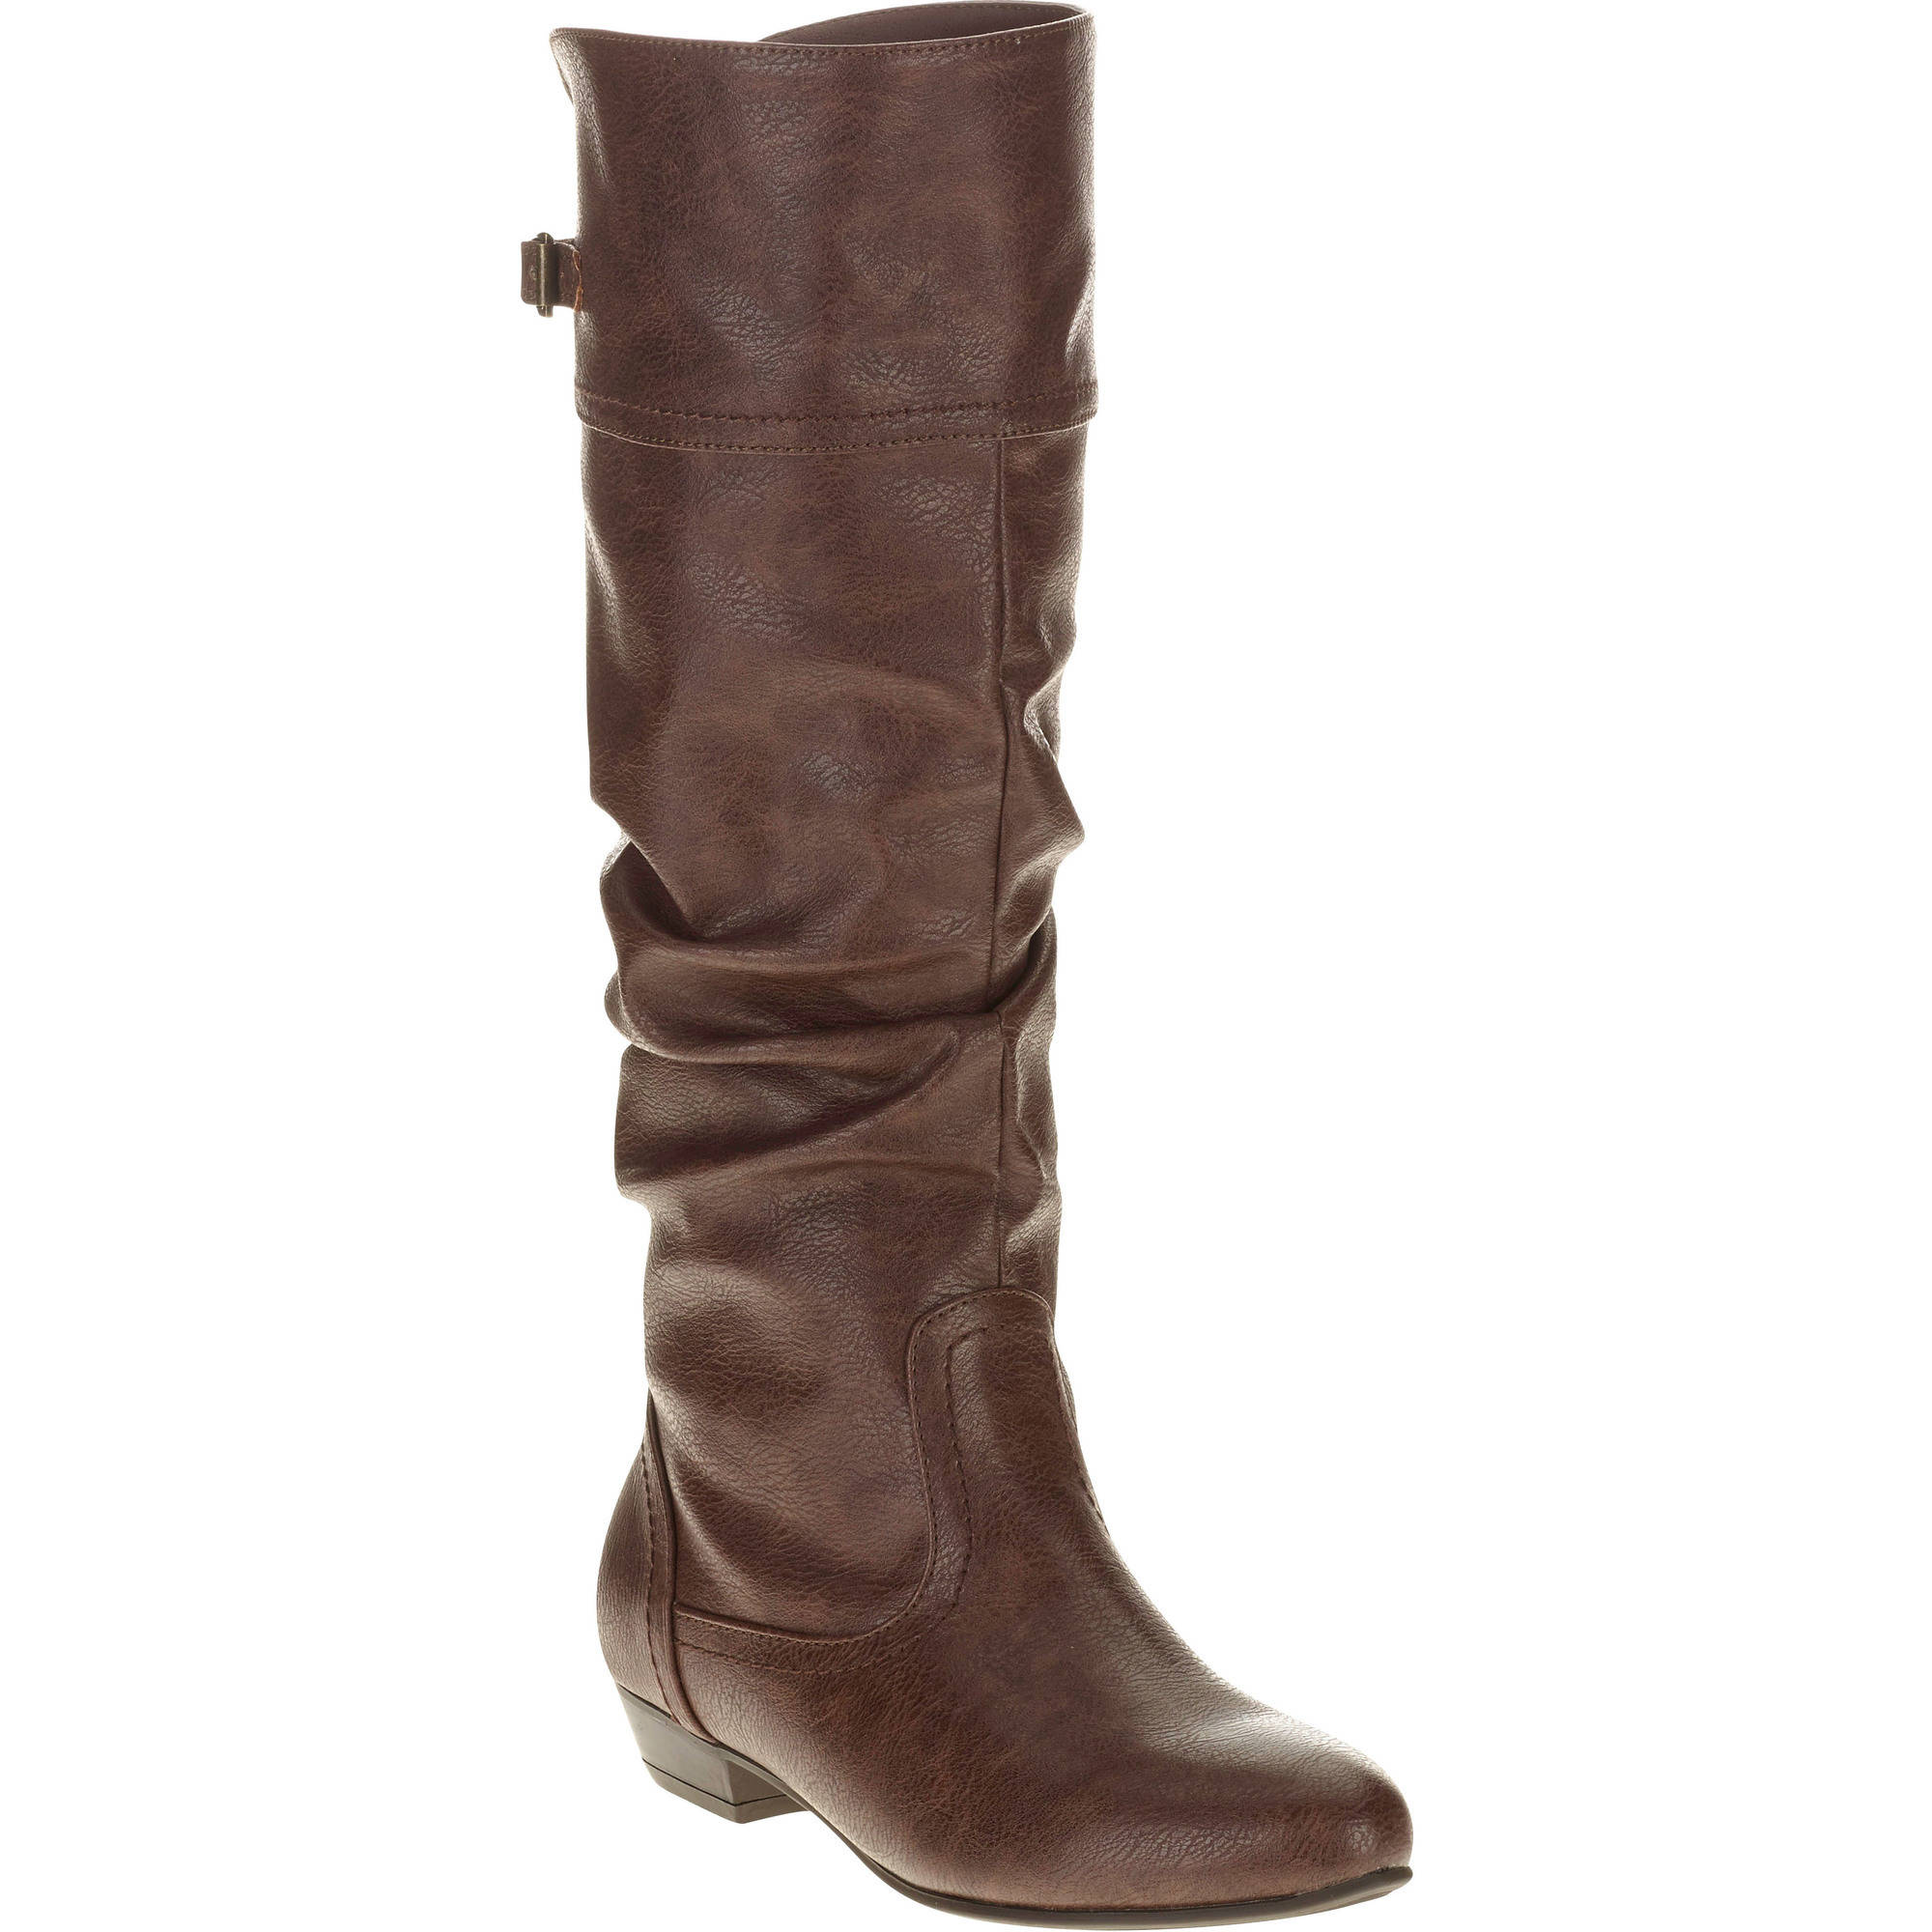 Faded Glory Women's Slouch Tall Boot - Walmart.com